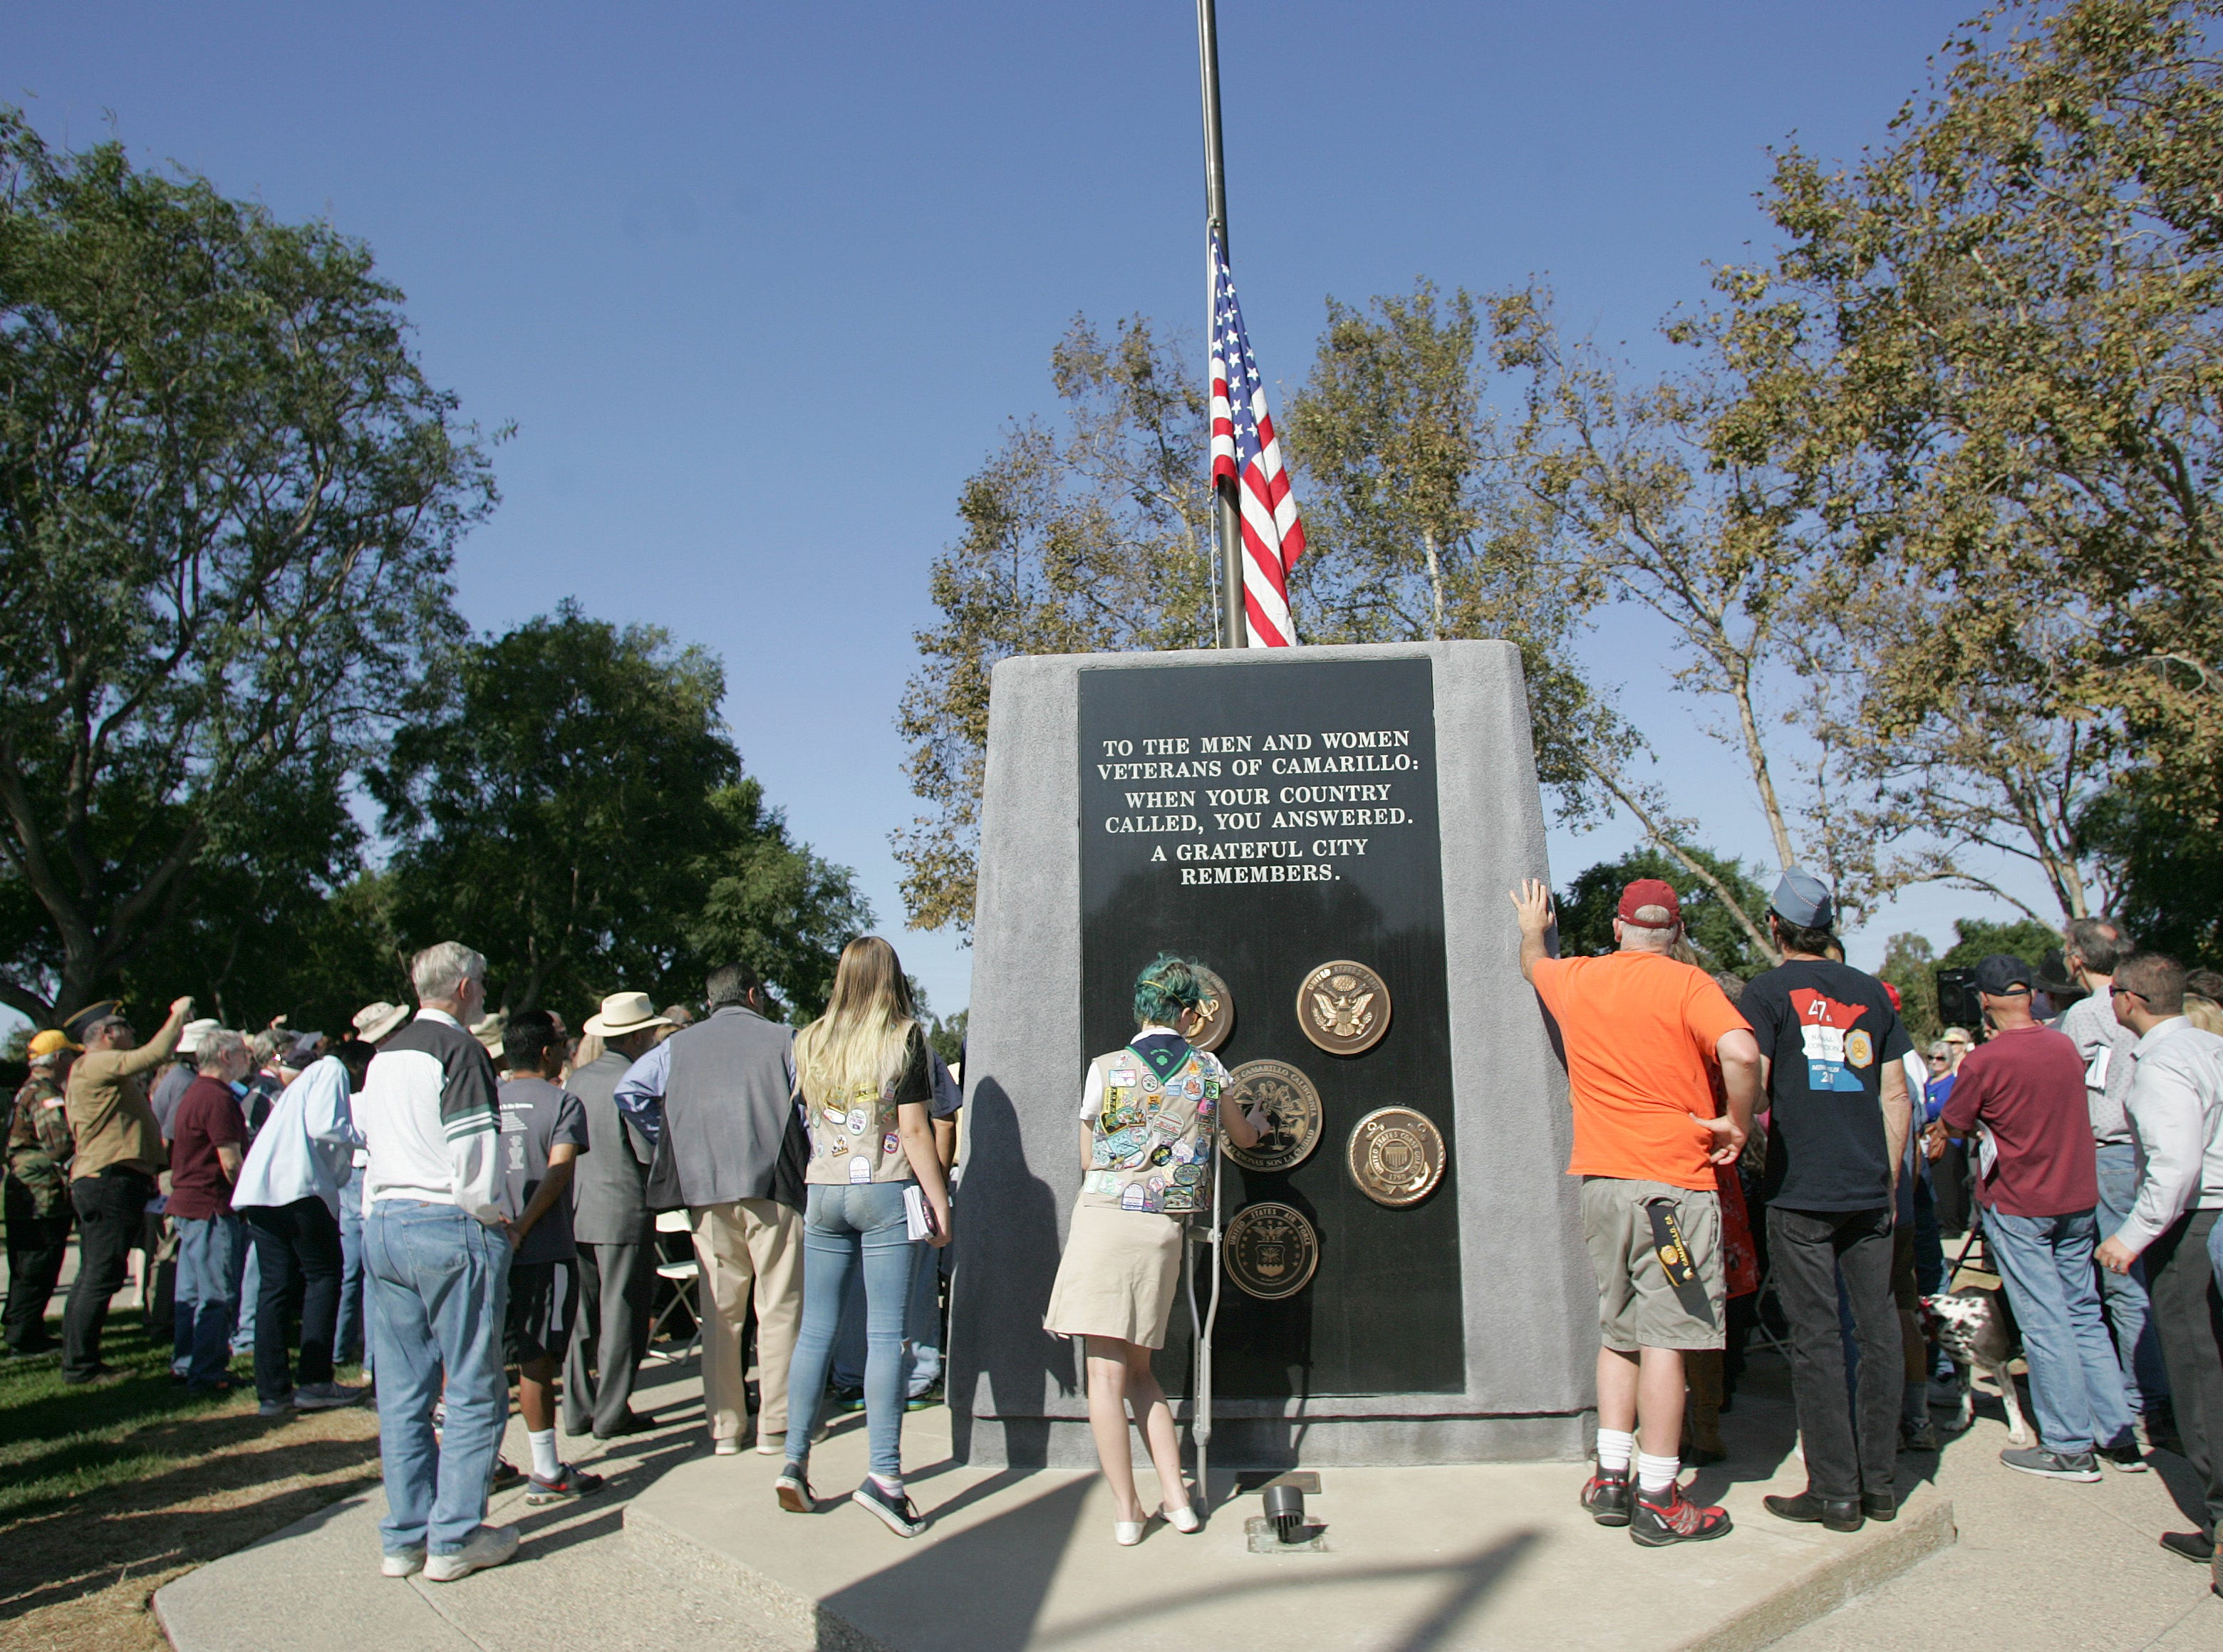 The audience gathers around the new veterans monument Saturday in Camarillo.